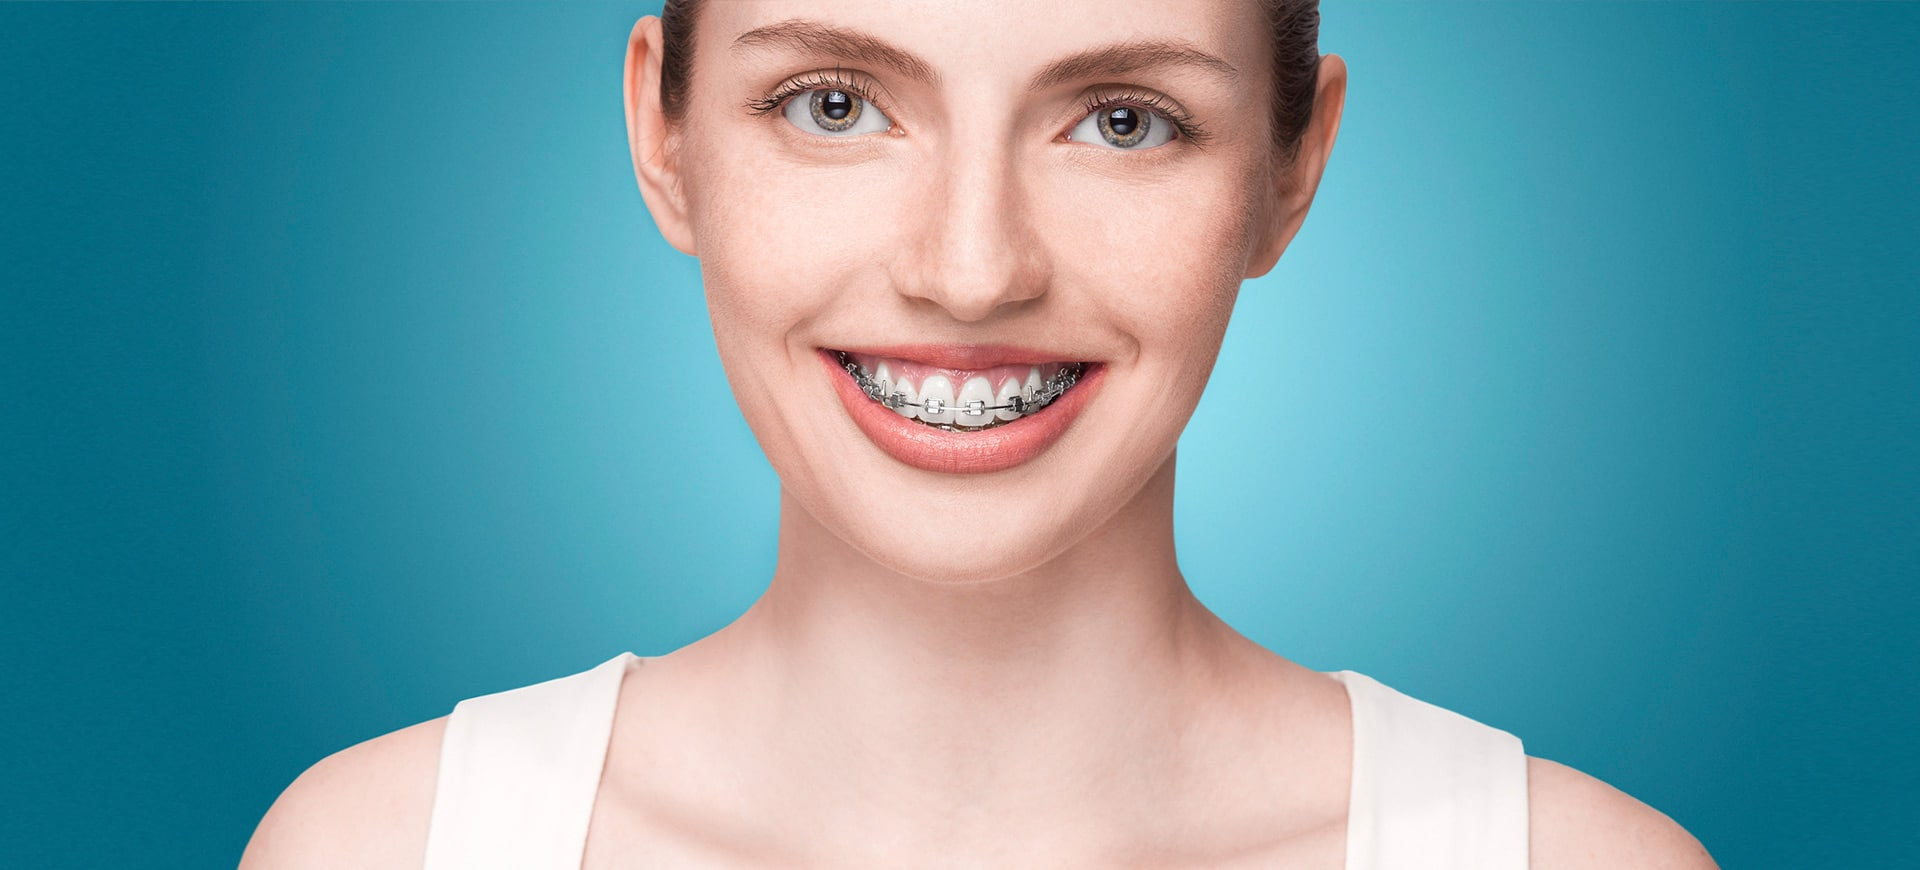 Orthodontics-and-cost-what-you-re-actually-paying-for.jpg